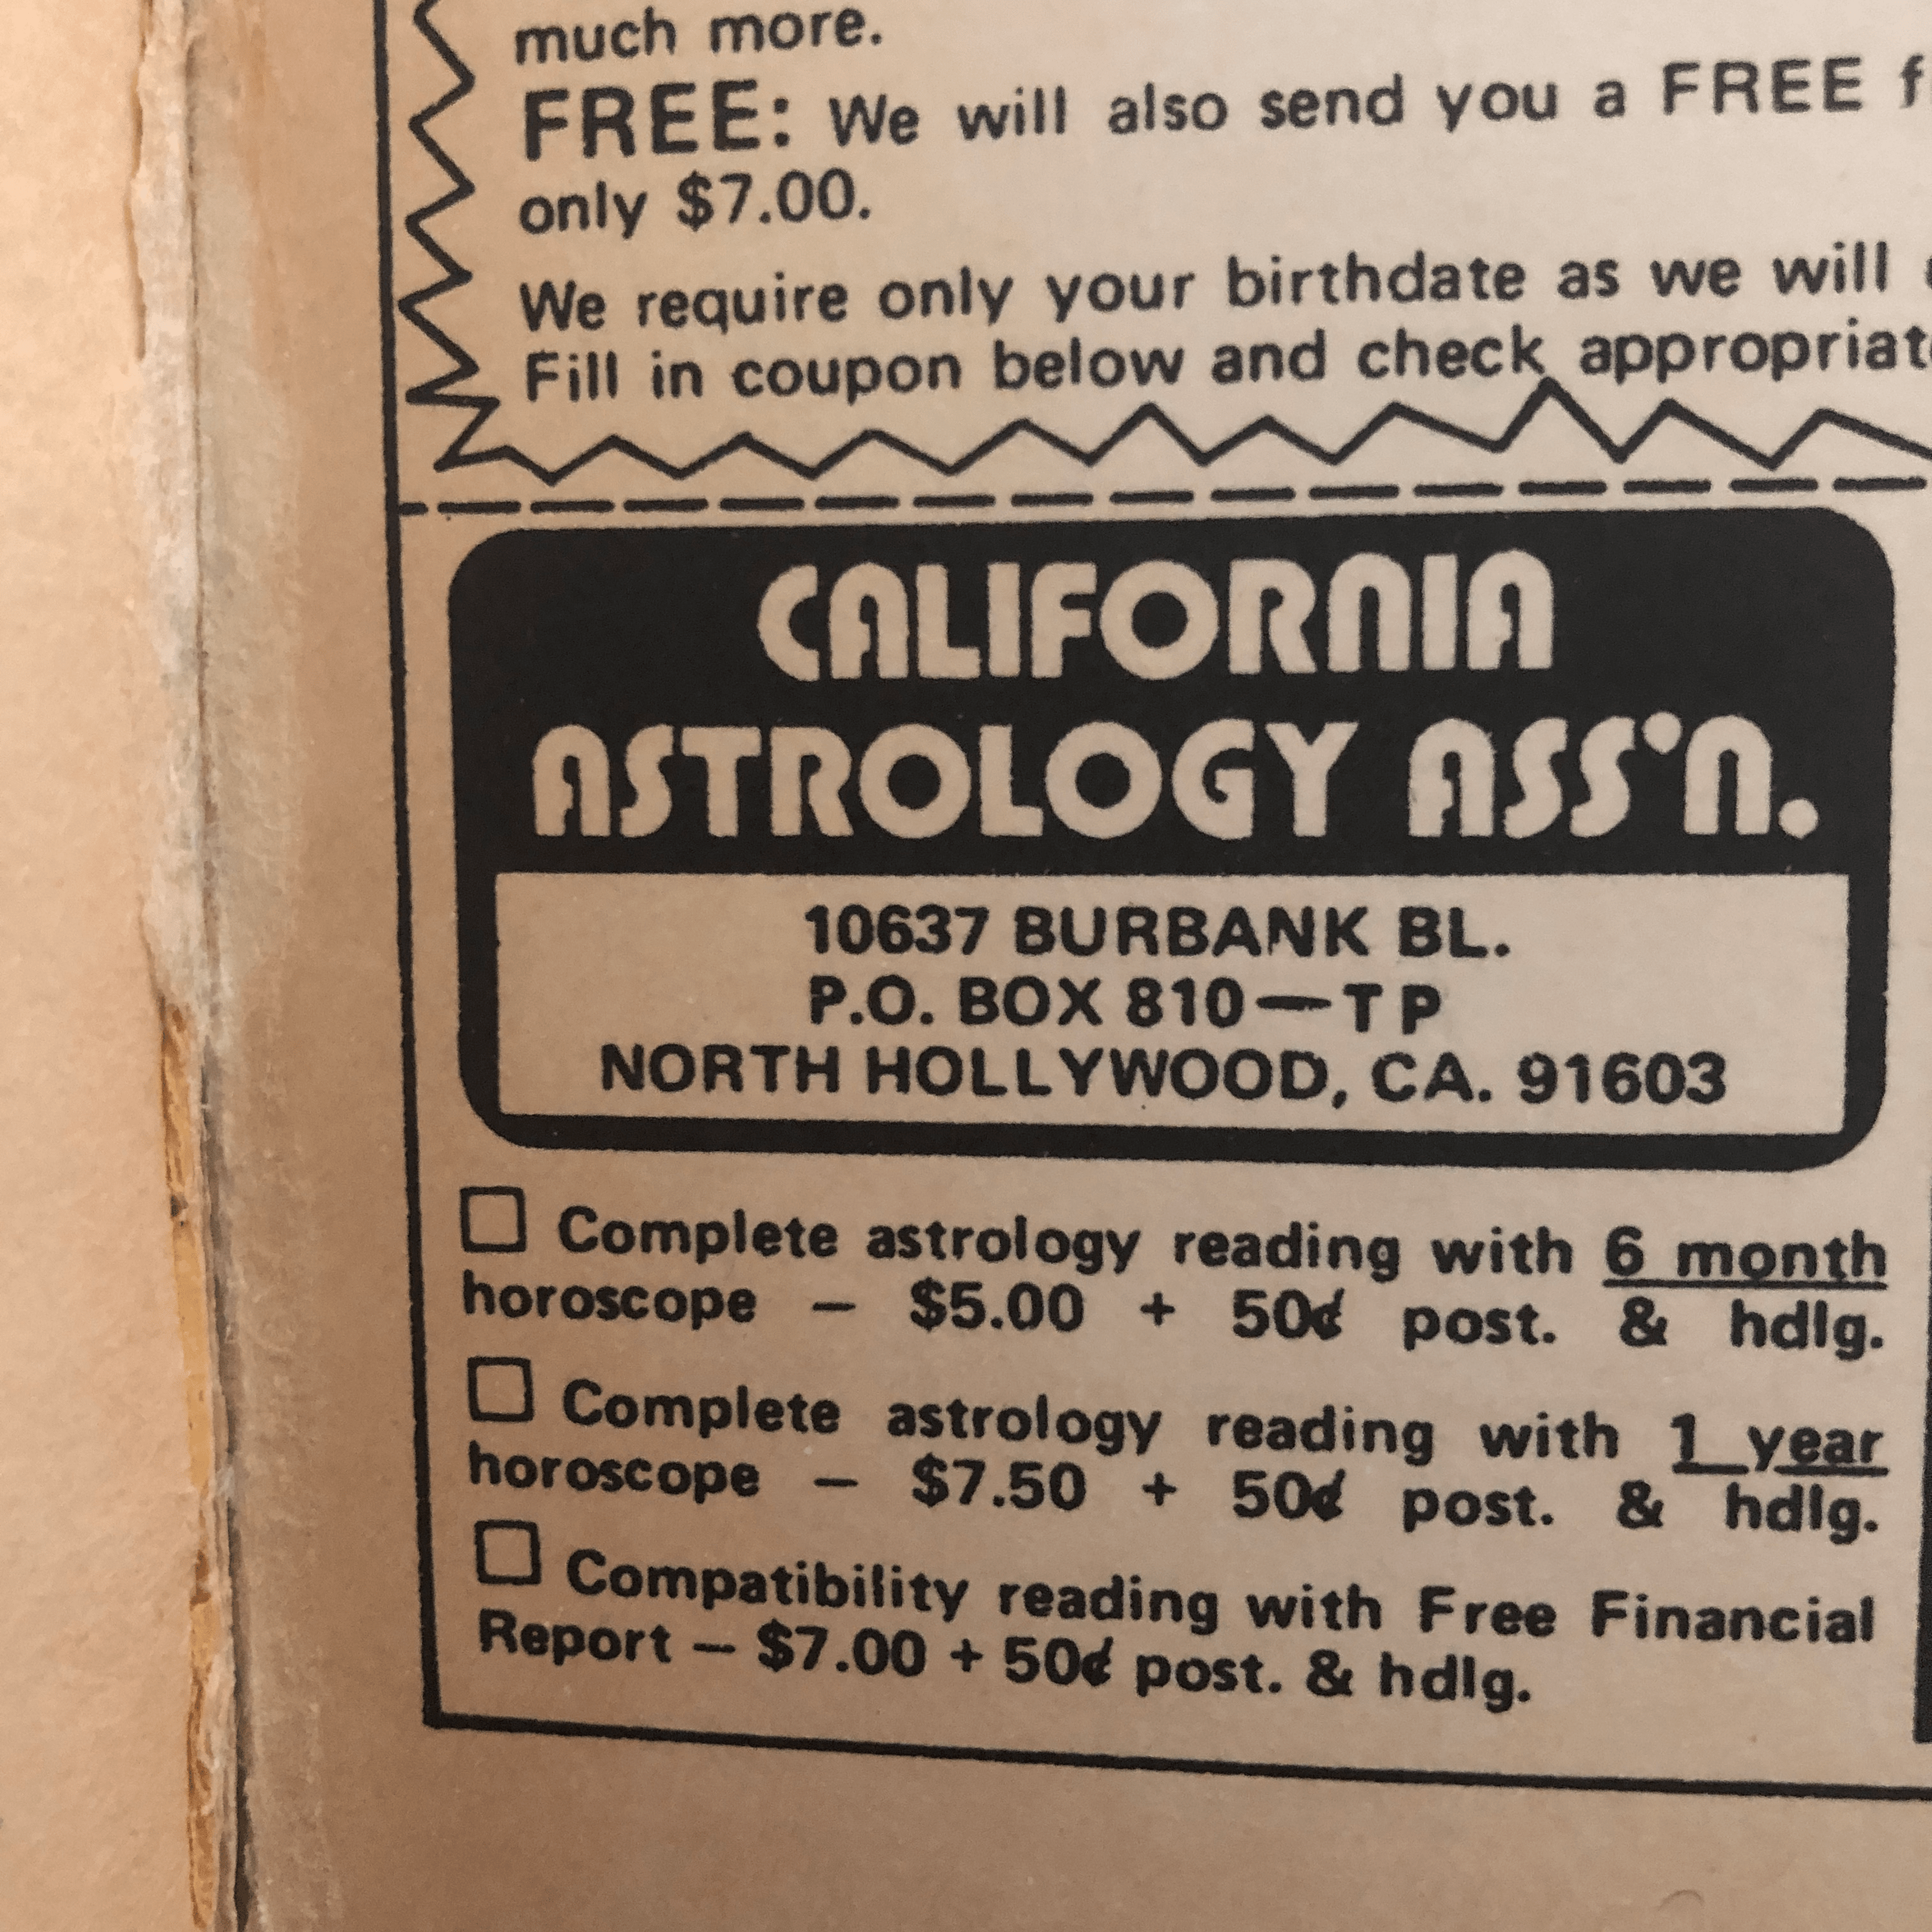 An old order form for the California Astrology Association. The options are complete astrology reading with 6 month horoscope - $5.00 + 50 cents post. & hdlg. Complete astrology reading with 1 year horoscope - $7.50 + 50 cents post. & hdlg. Compatibility reading with Free Financial Report - $7.00 + 50 cents post. & hdlg.